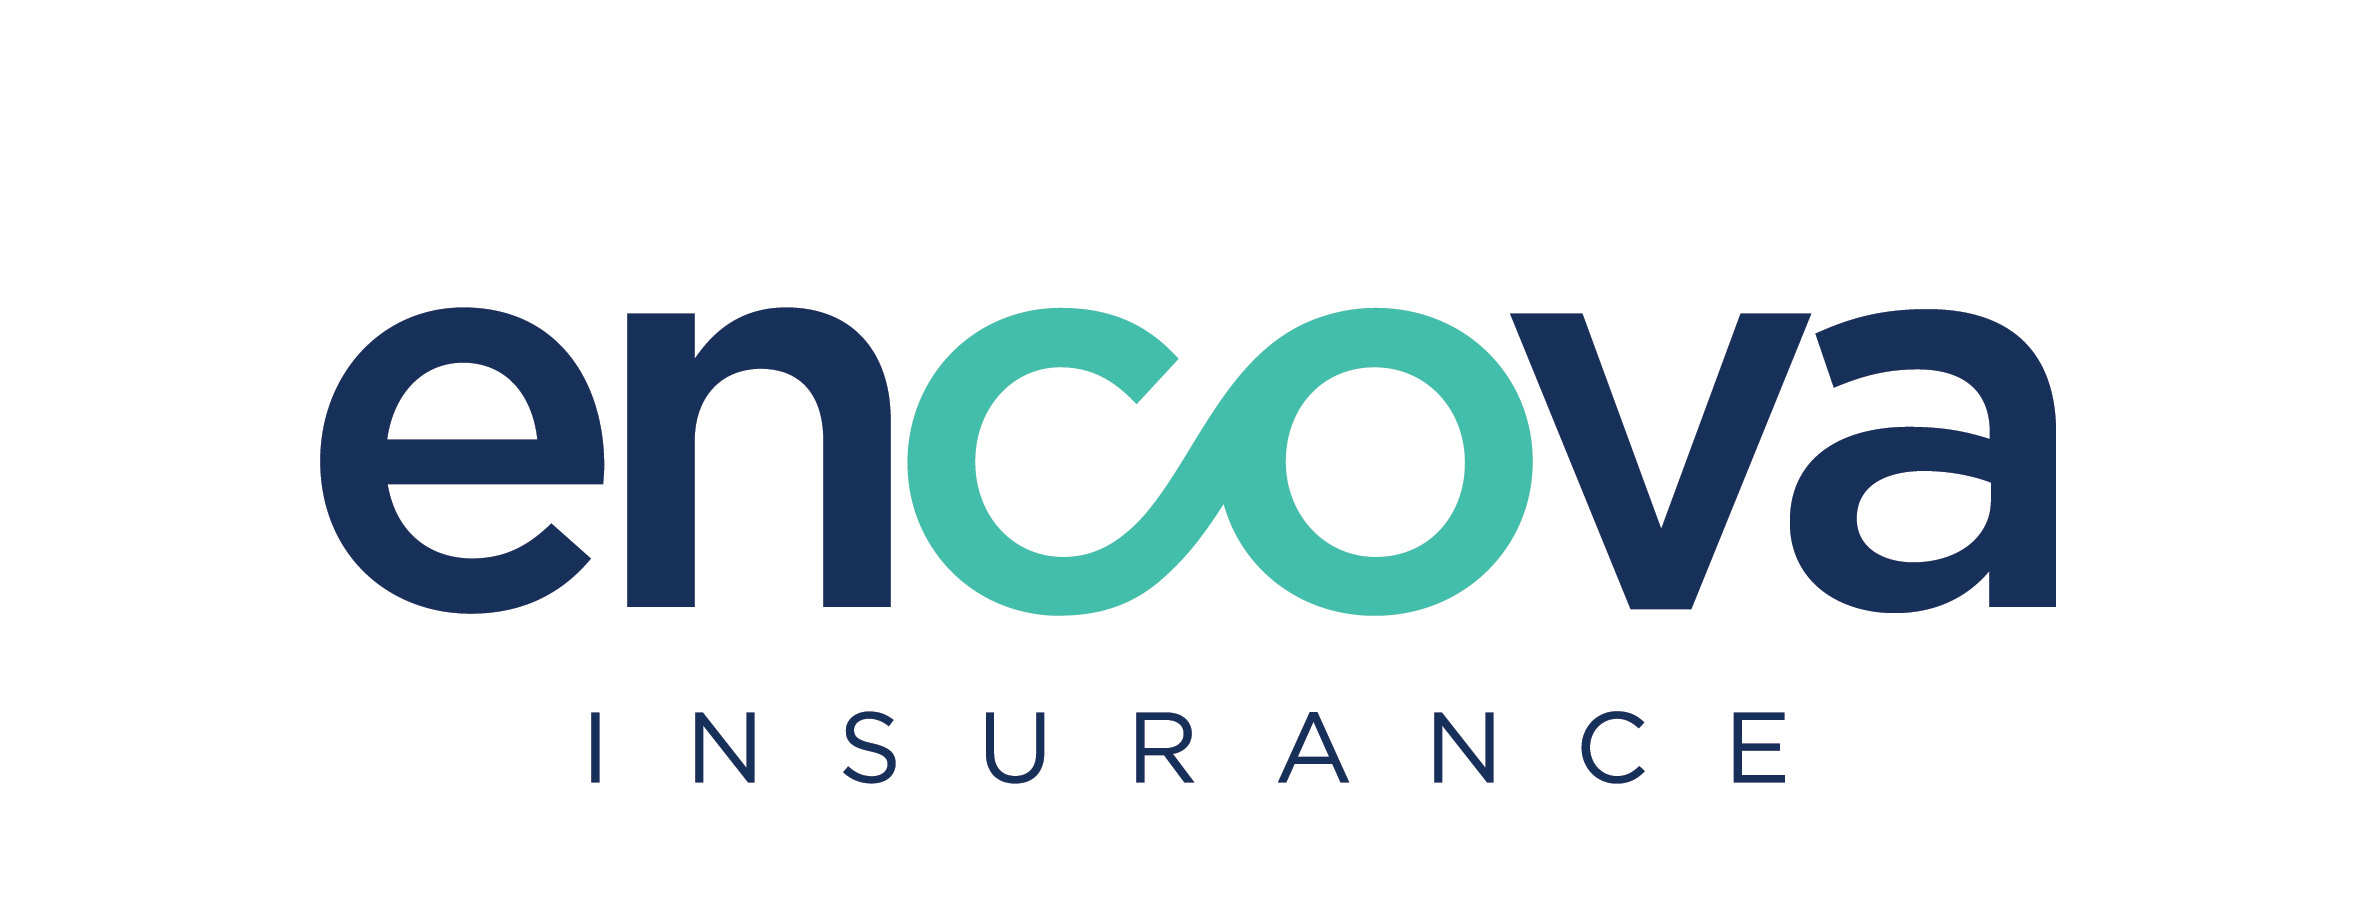 encova-logo-CMYK-color